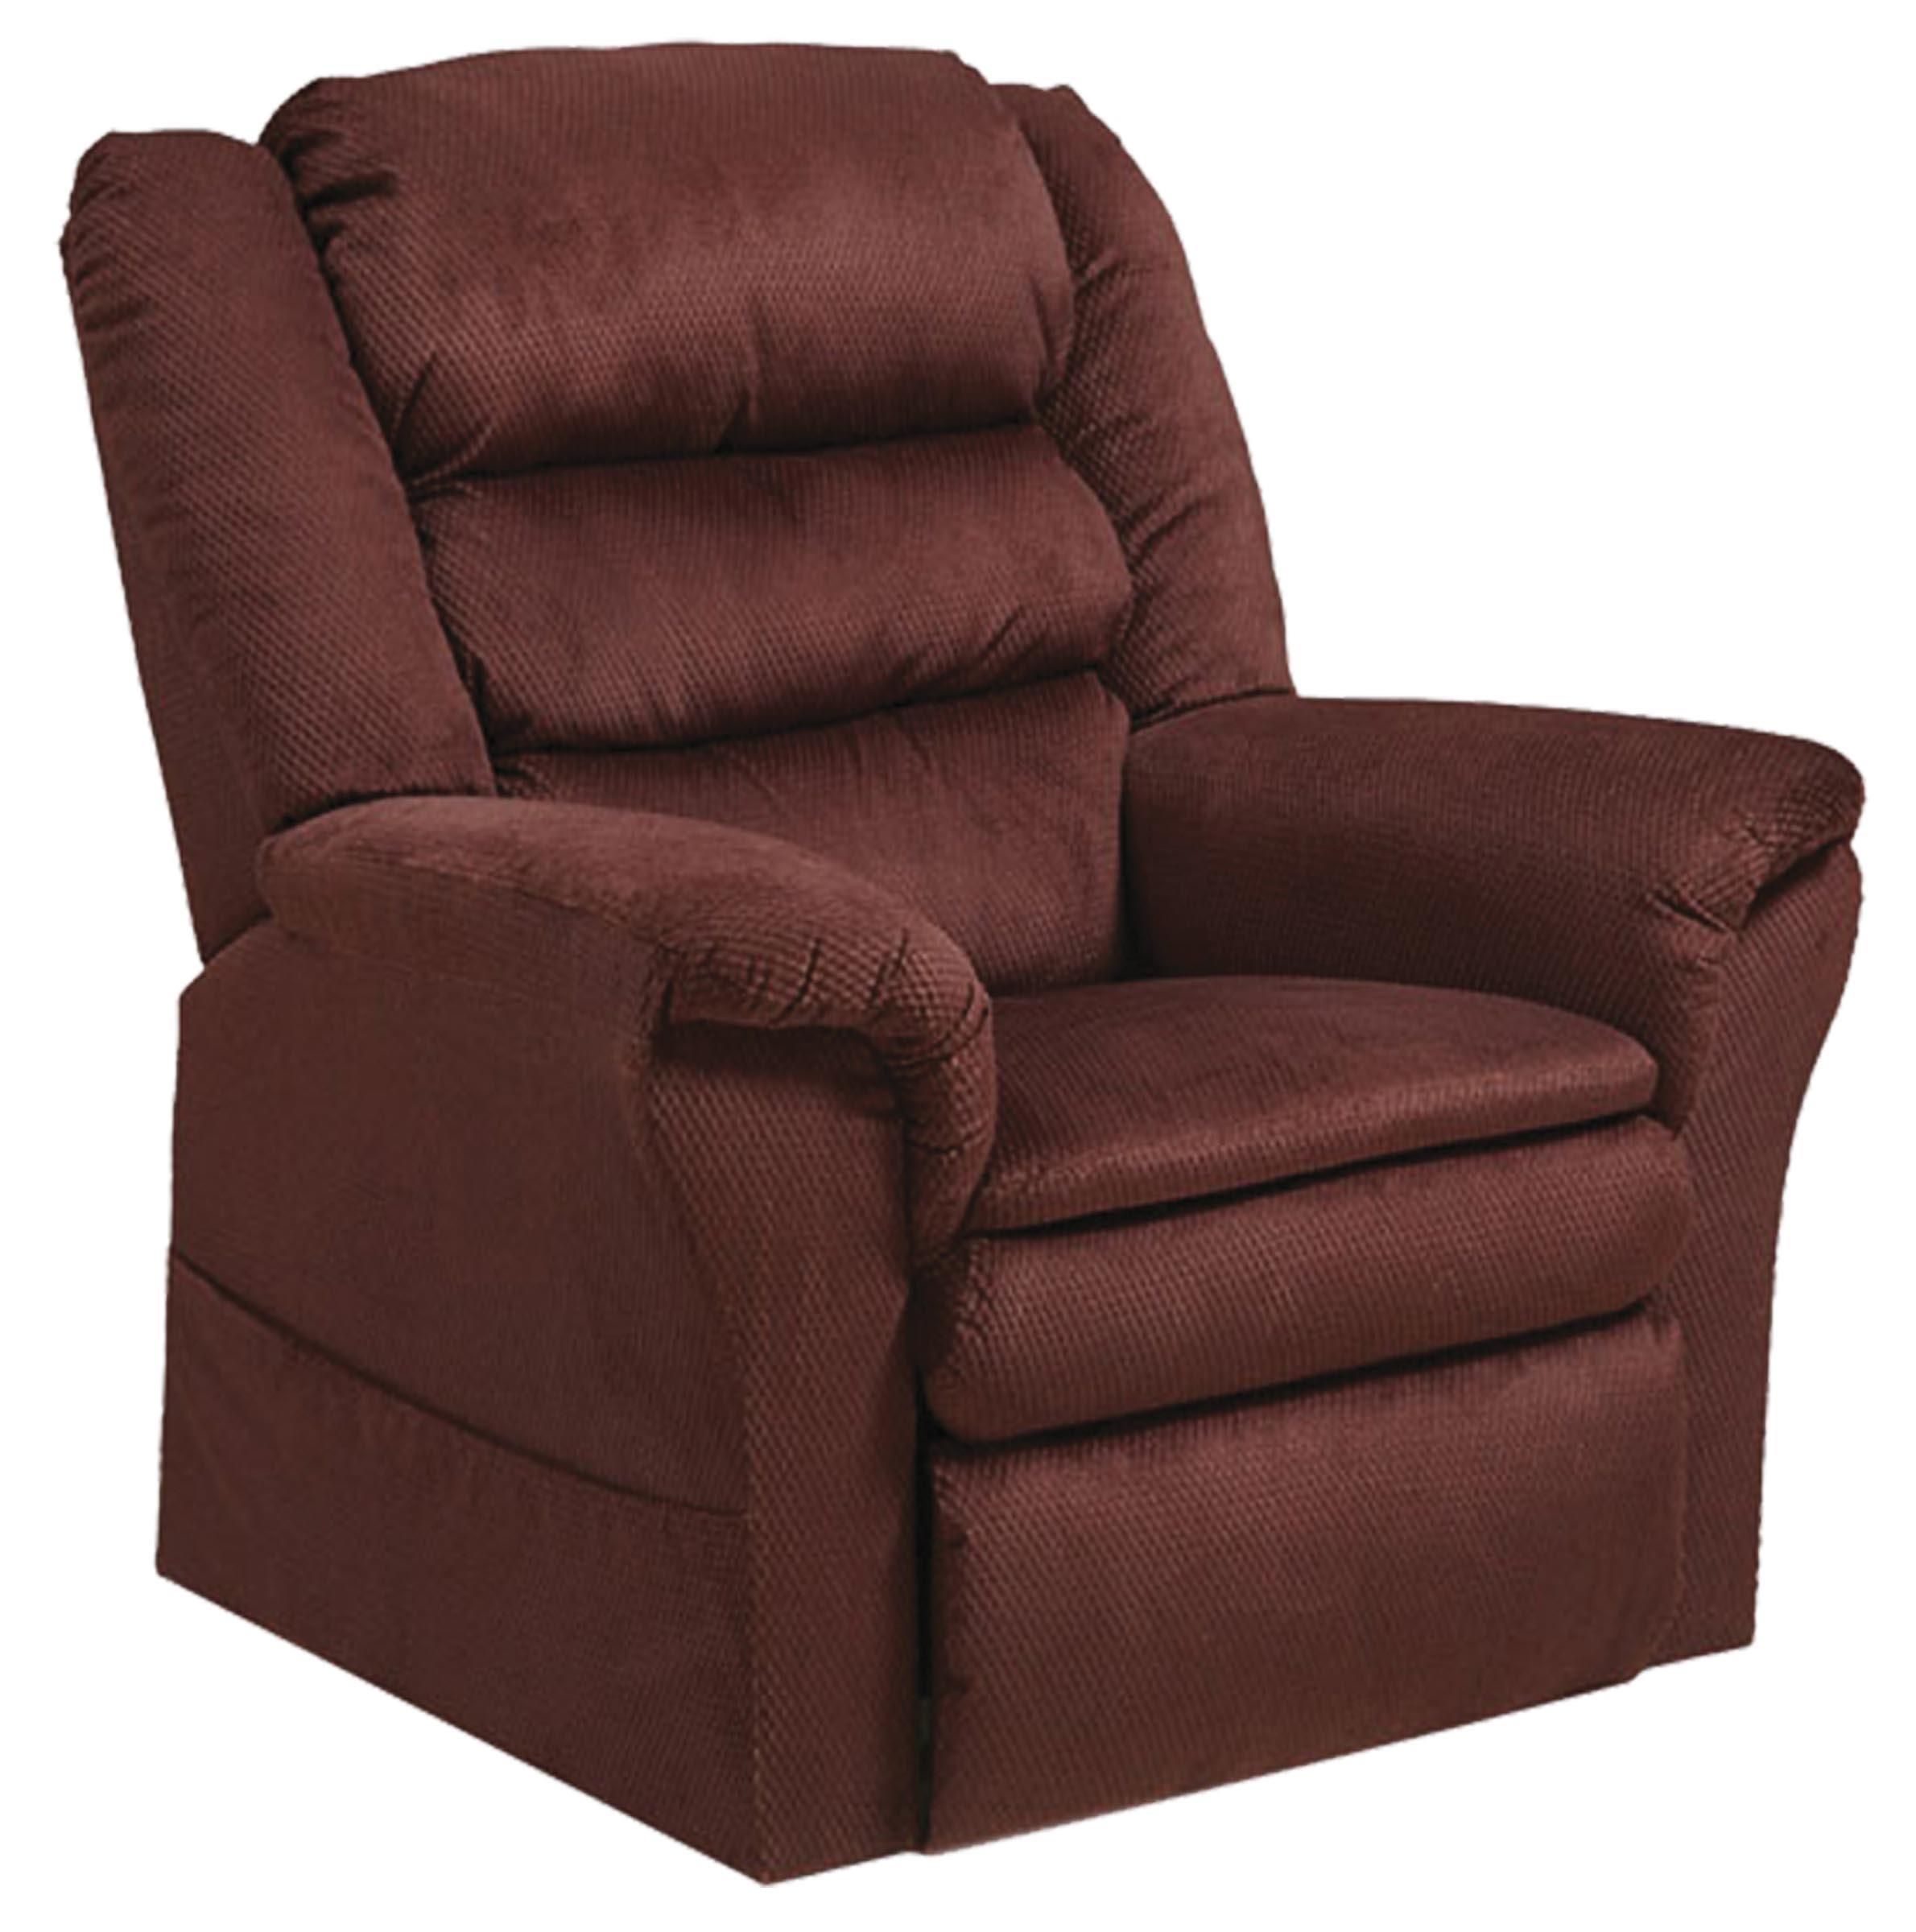 Preston Power Lift Recliner with Pillowtop Seat by Catnapper at Wilson's Furniture